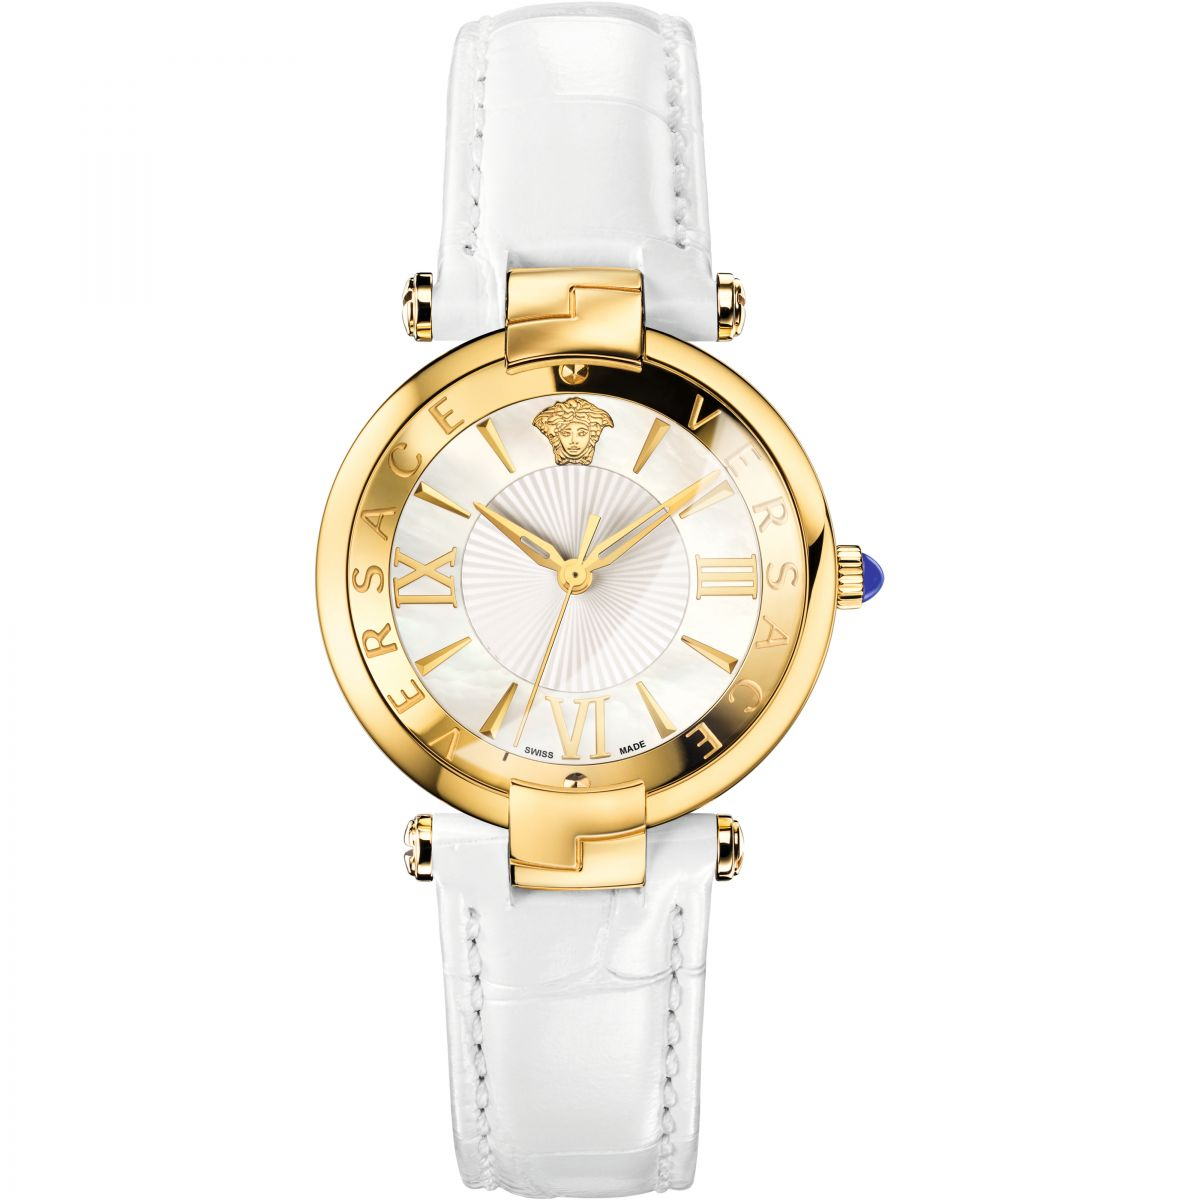 versace revive 35mm reloj para mujer blanco vai030016 es watch shop. Black Bedroom Furniture Sets. Home Design Ideas